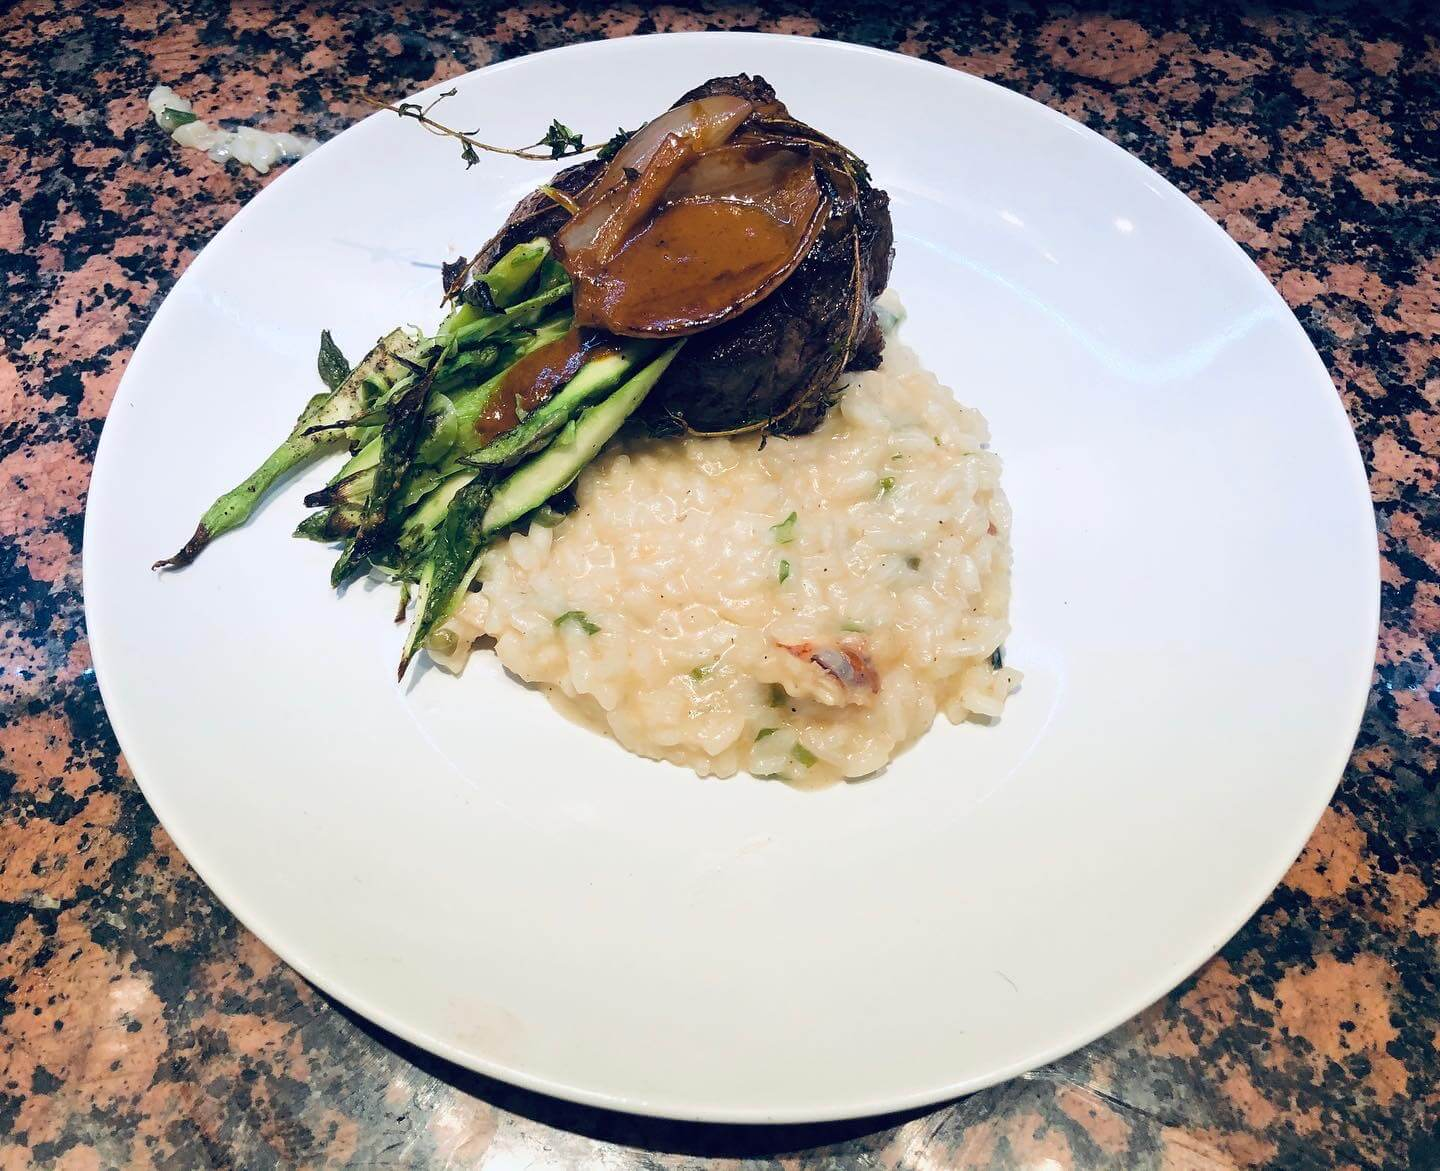 Thyme garlic filet with lobster risotto and shaved asparagus